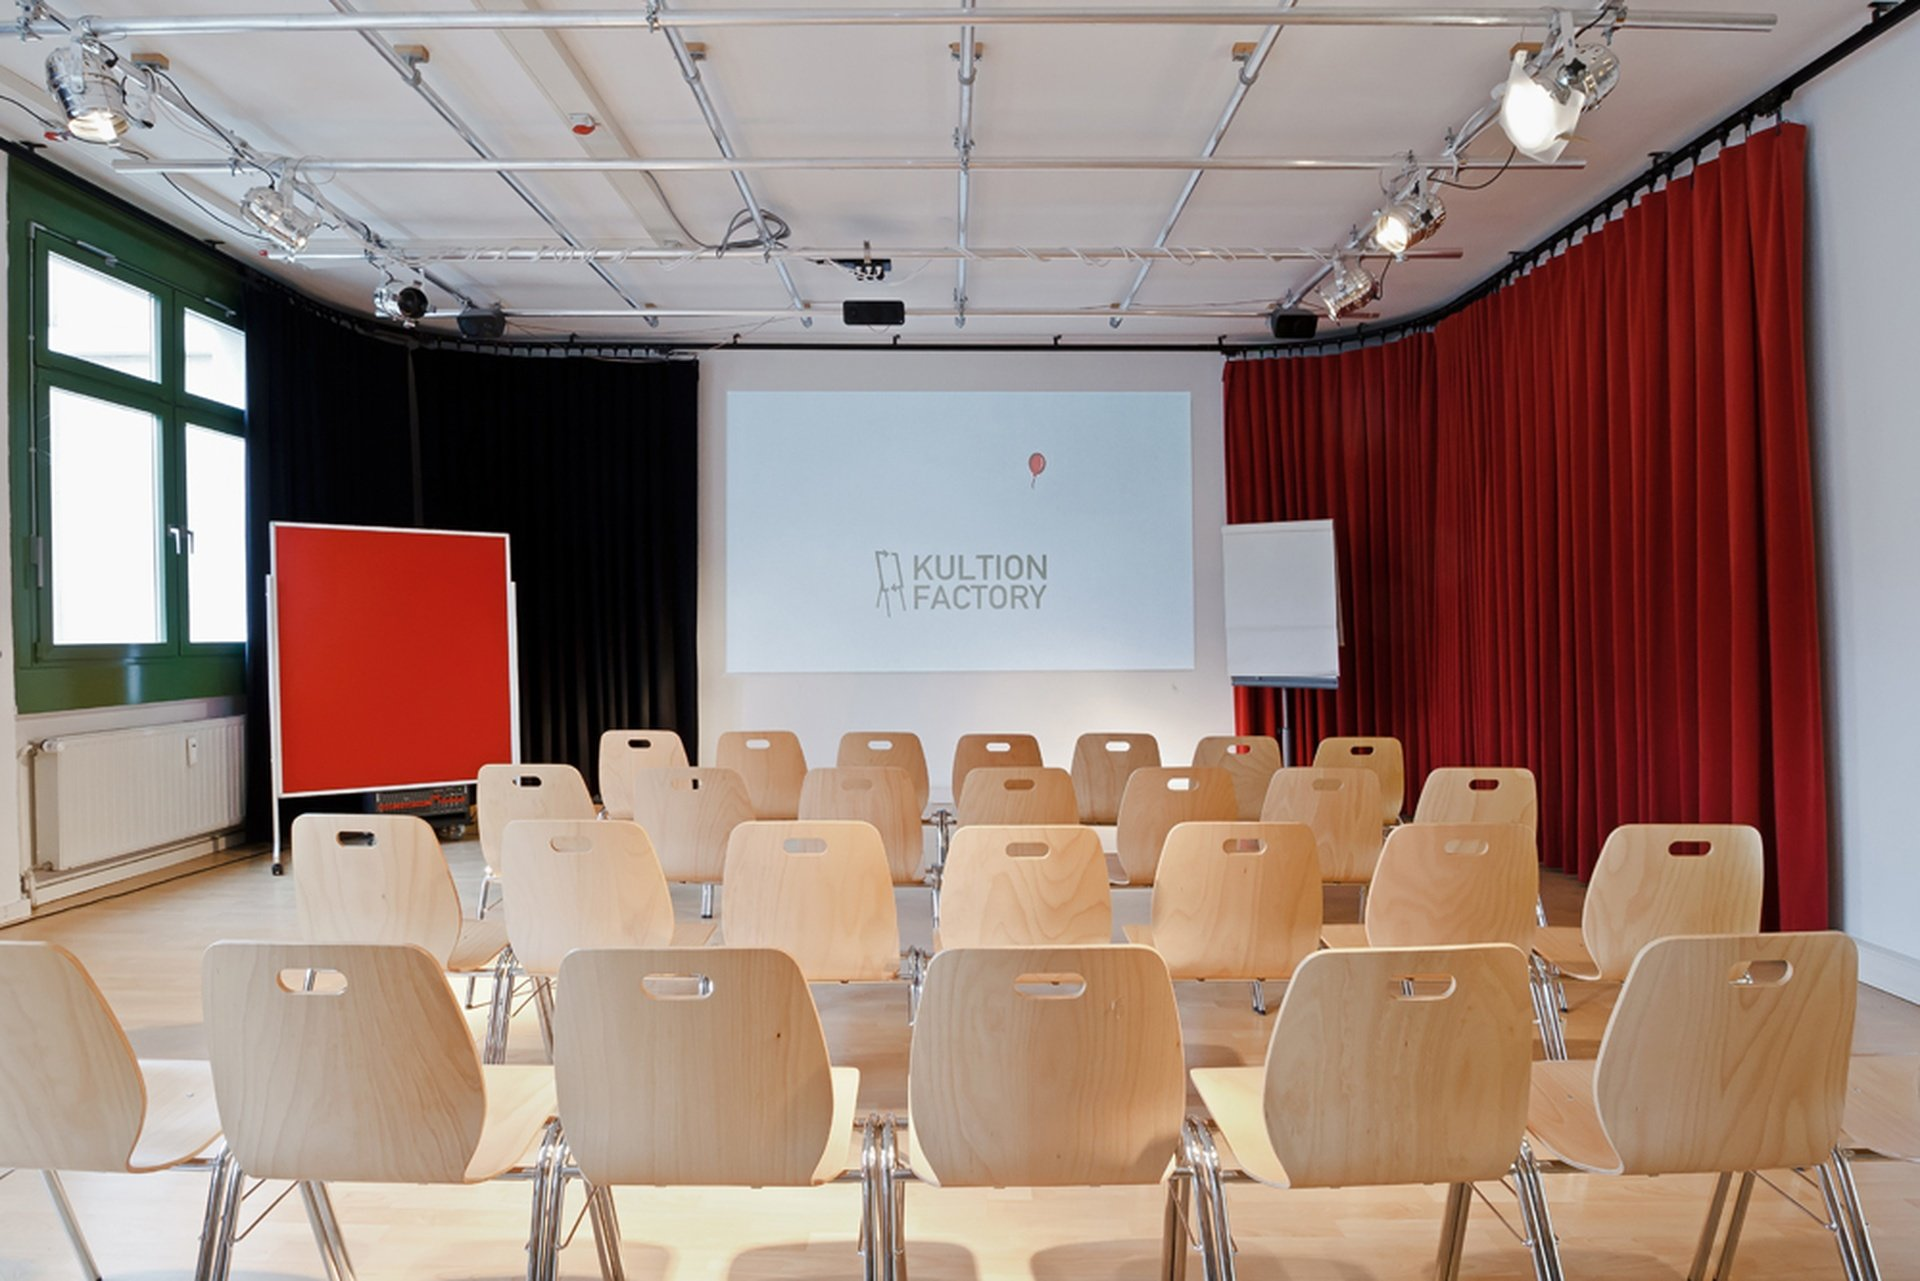 Munich seminar rooms Lieu industriel Kultion Factory - Studio image 0